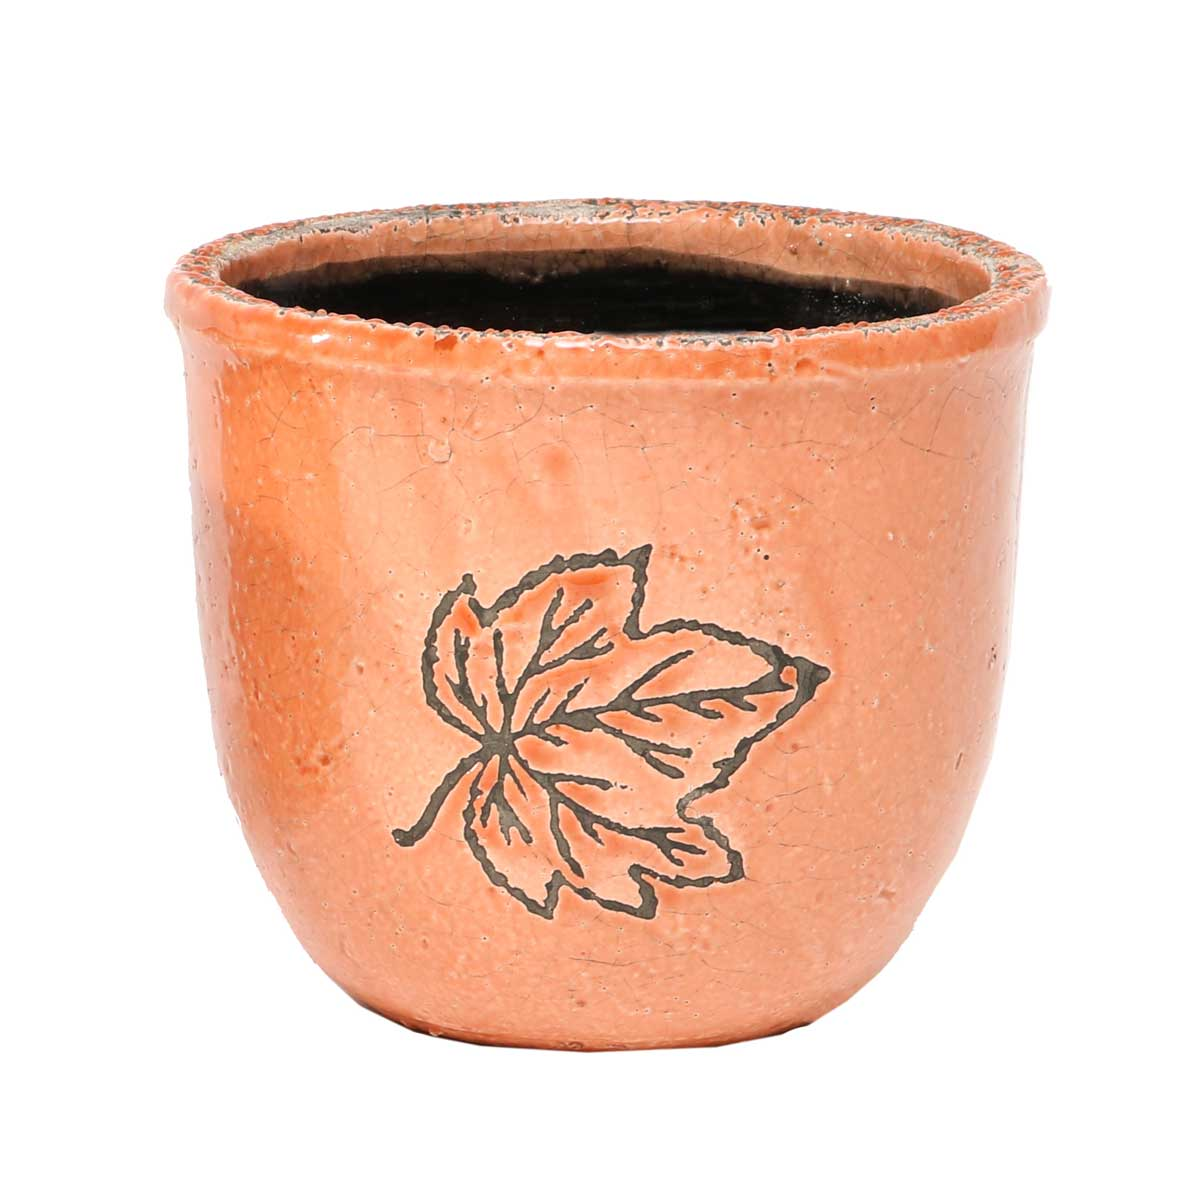 Leaf Cache Pot Clay 5.5�x6� A2069 CL v22